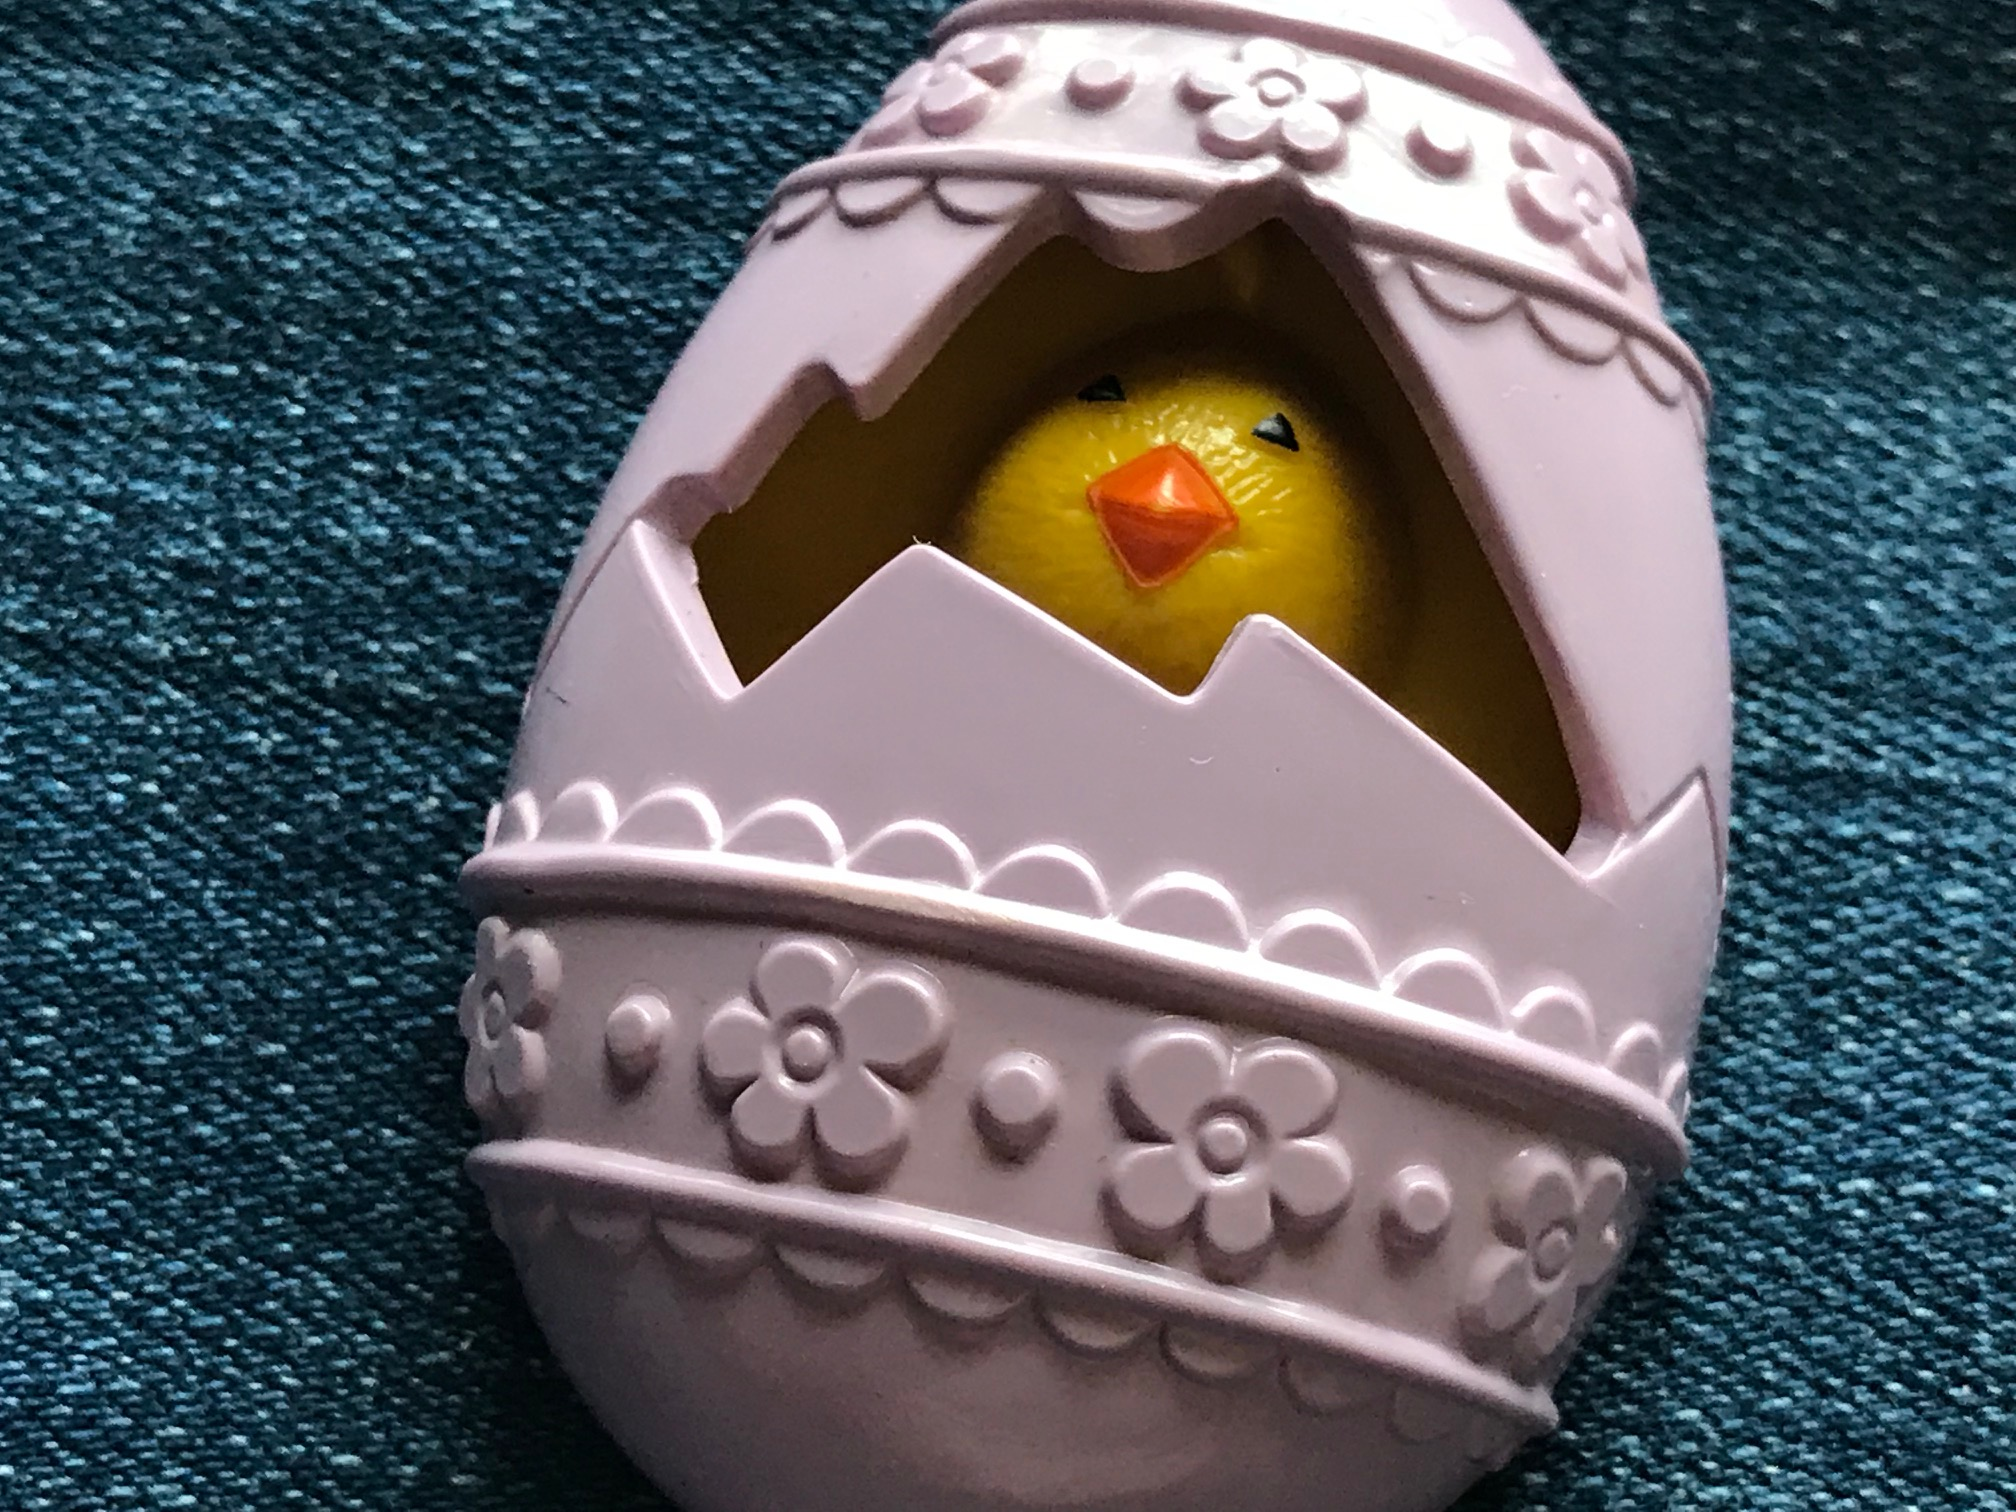 Happy Toxic Easter? Yikes!! 1977 Avon Fragrance Glacé Easter Egg Pin: 6,759 ppm Lead [90 ppm is unsafe] + 6,018 ppm Cadmium [75 is unsafe].